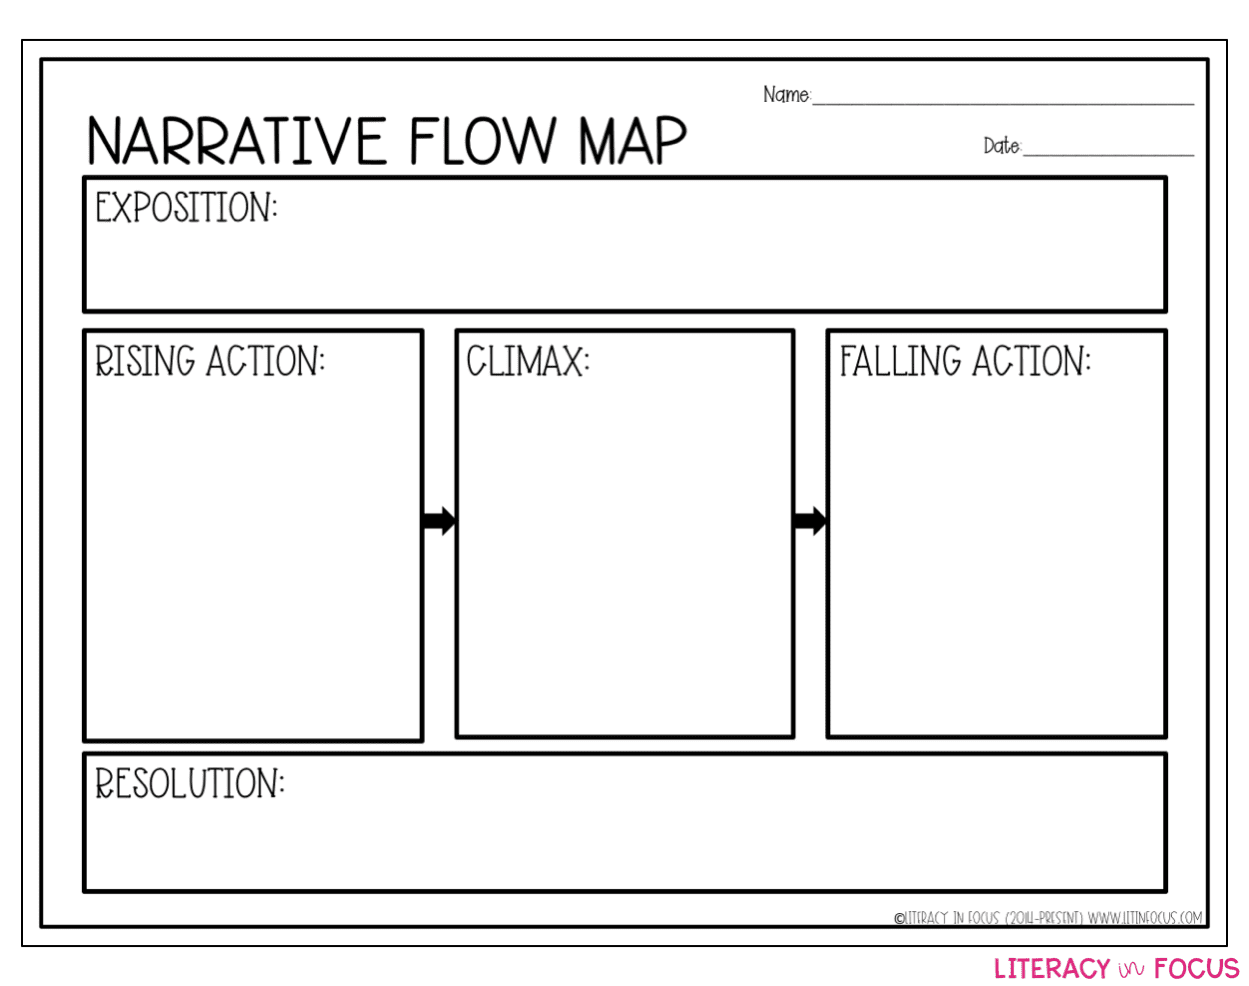 Narrative Flow Map